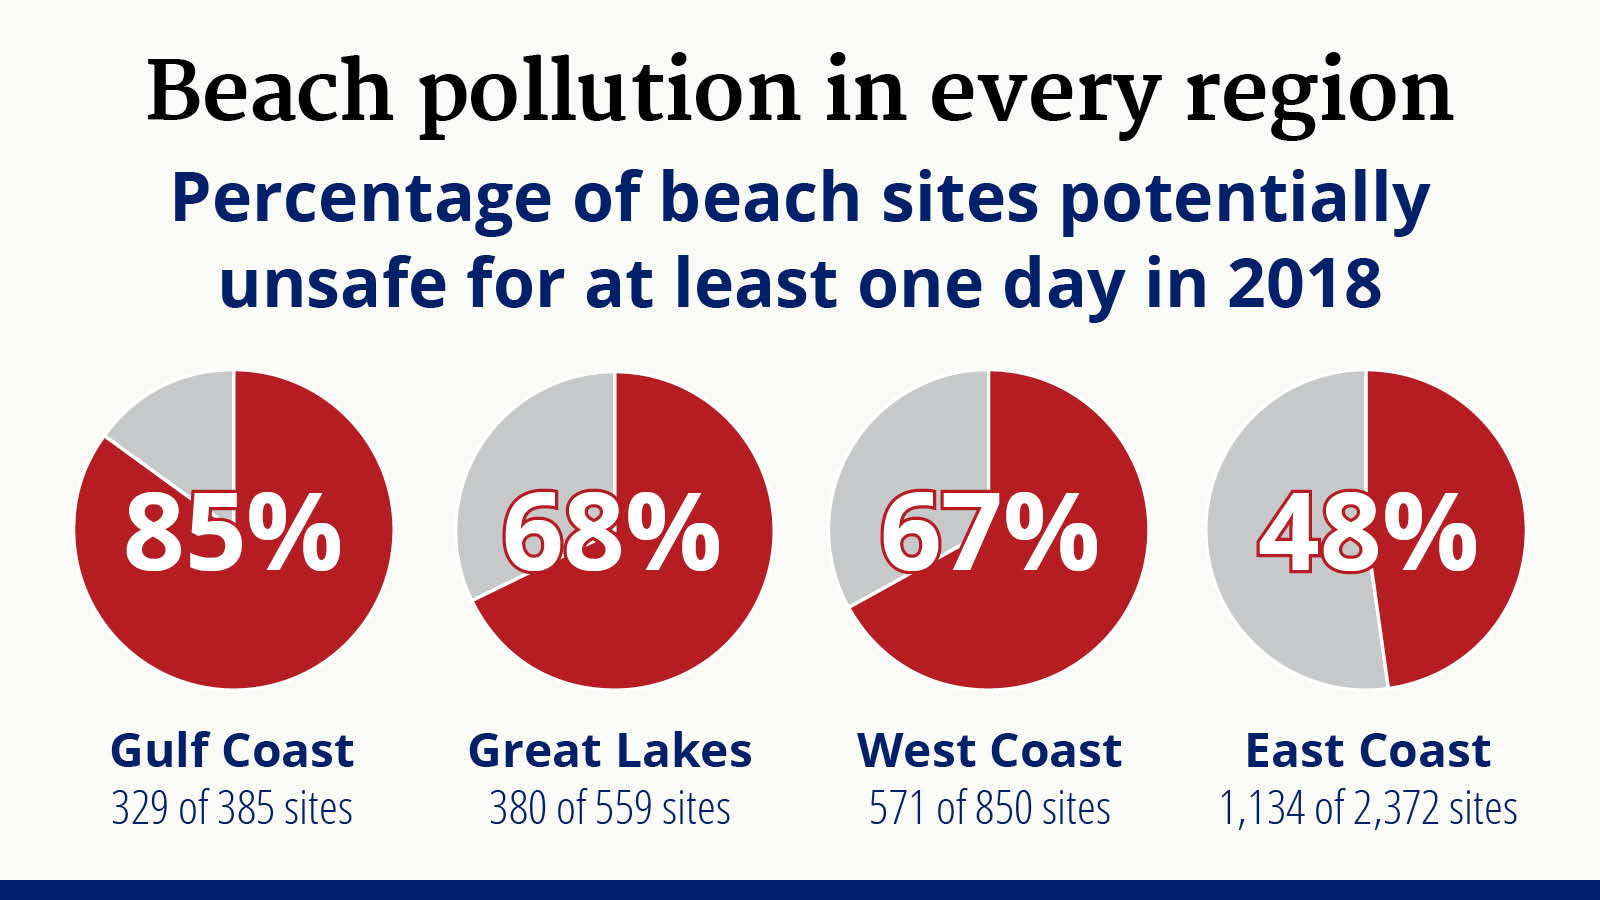 More than half of the thousands of beach sites sampled for bacteria across the country were potentially unsafe for swimming on at least one day in 2018